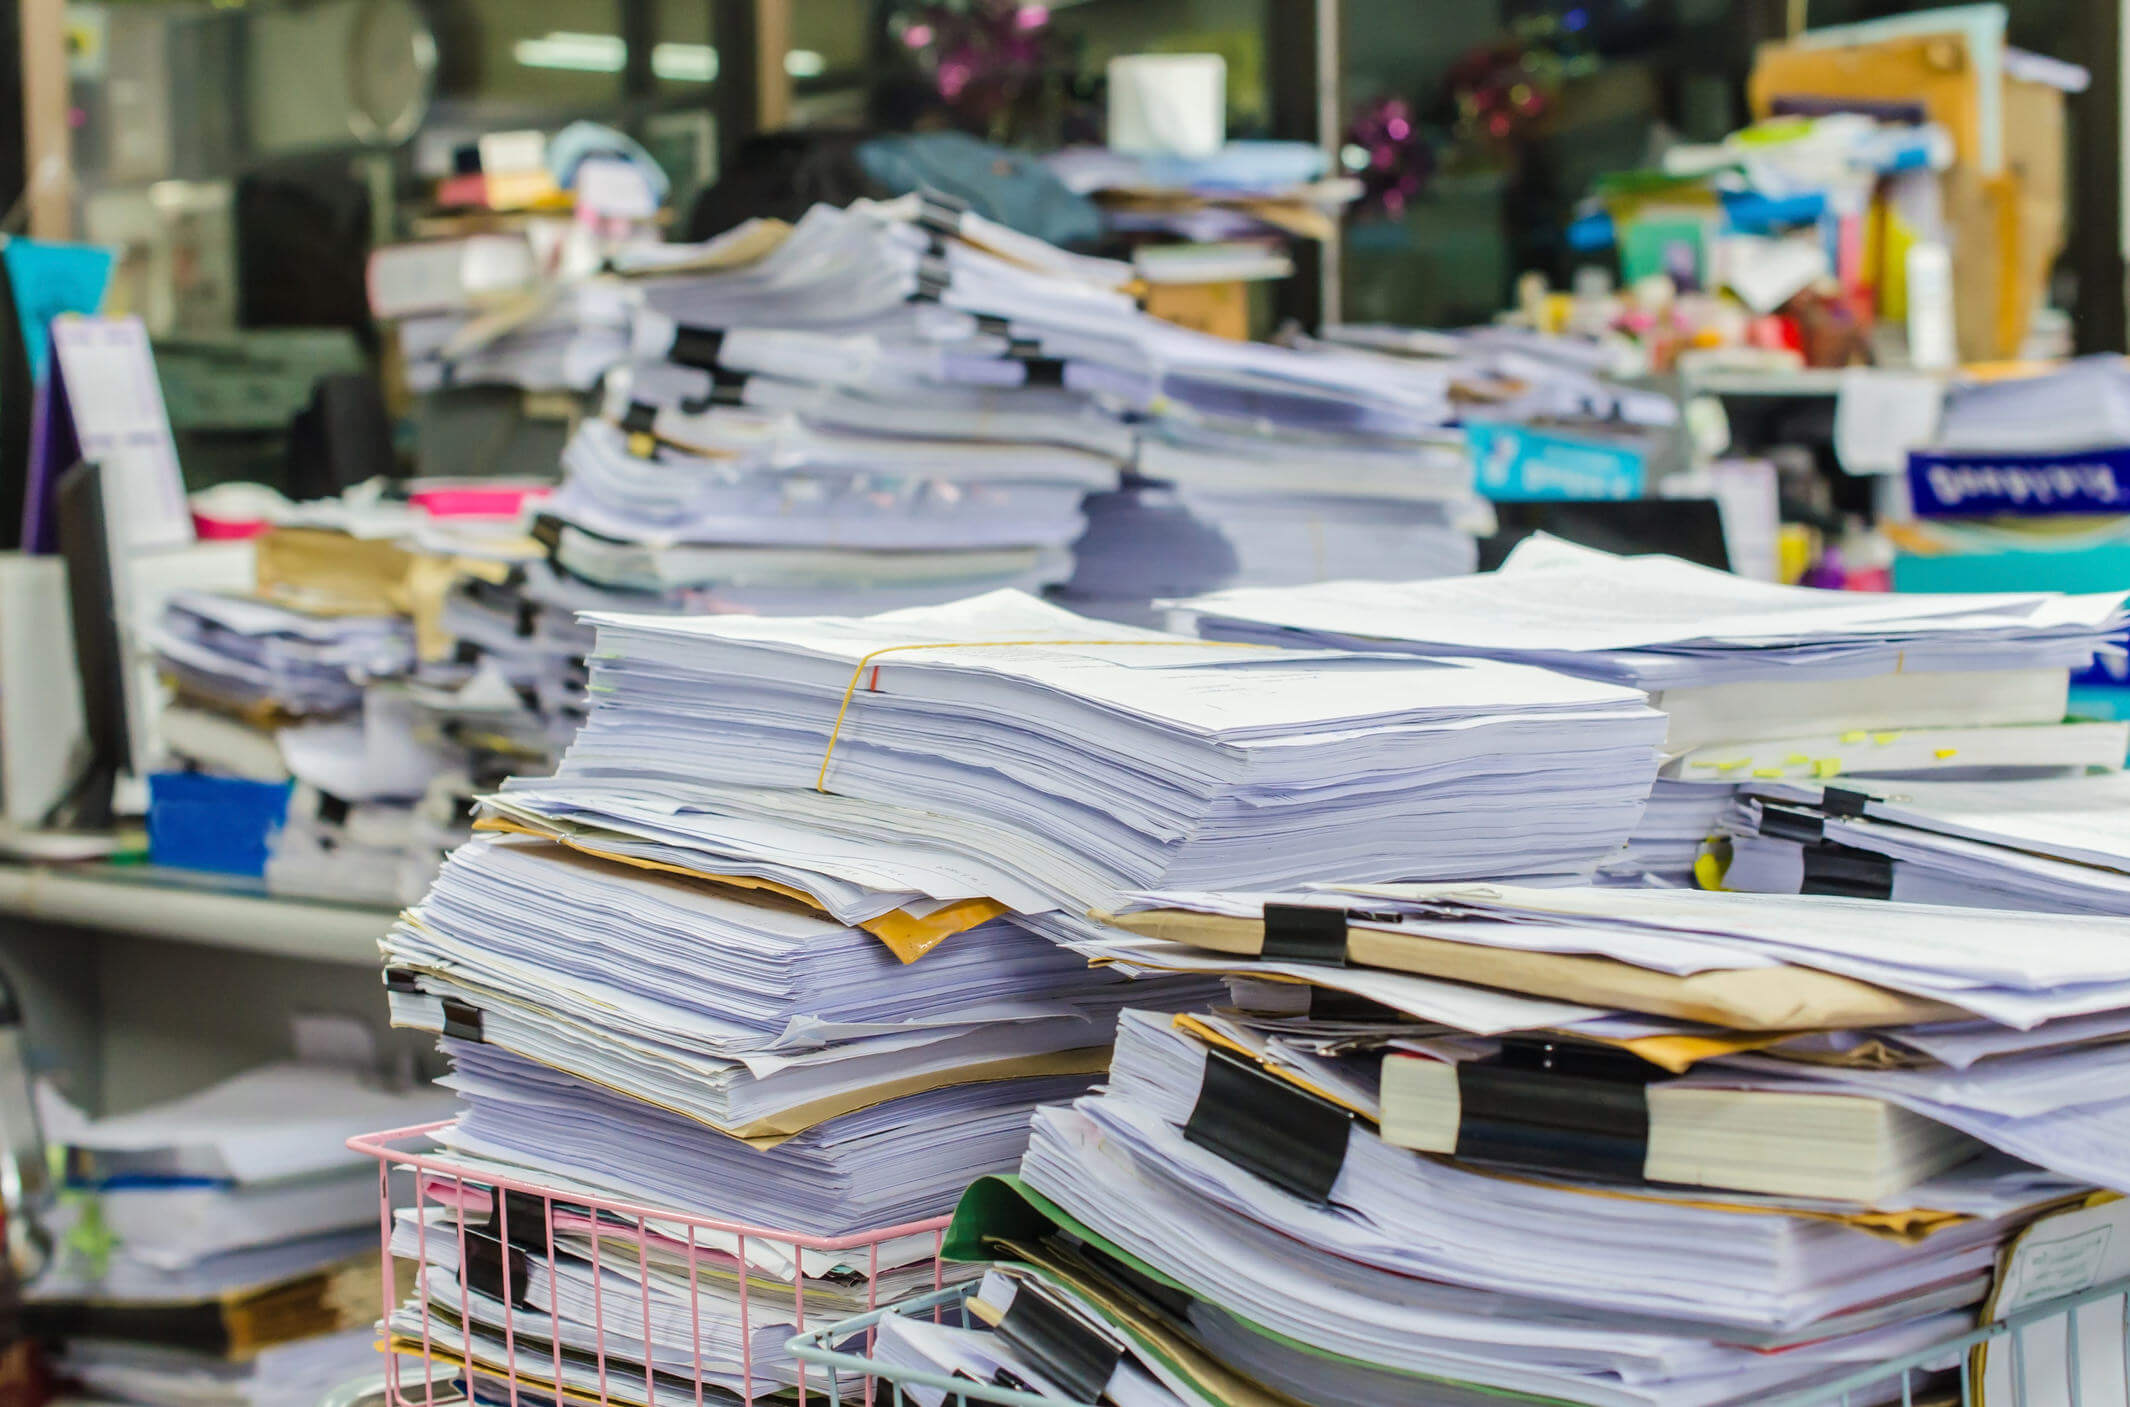 Medical Records Scanning, Legal Discovery Scanning, Accounts Payable Scanning, Human Resources Scanning, Prepping, Scanning, Indexing, Quality Control